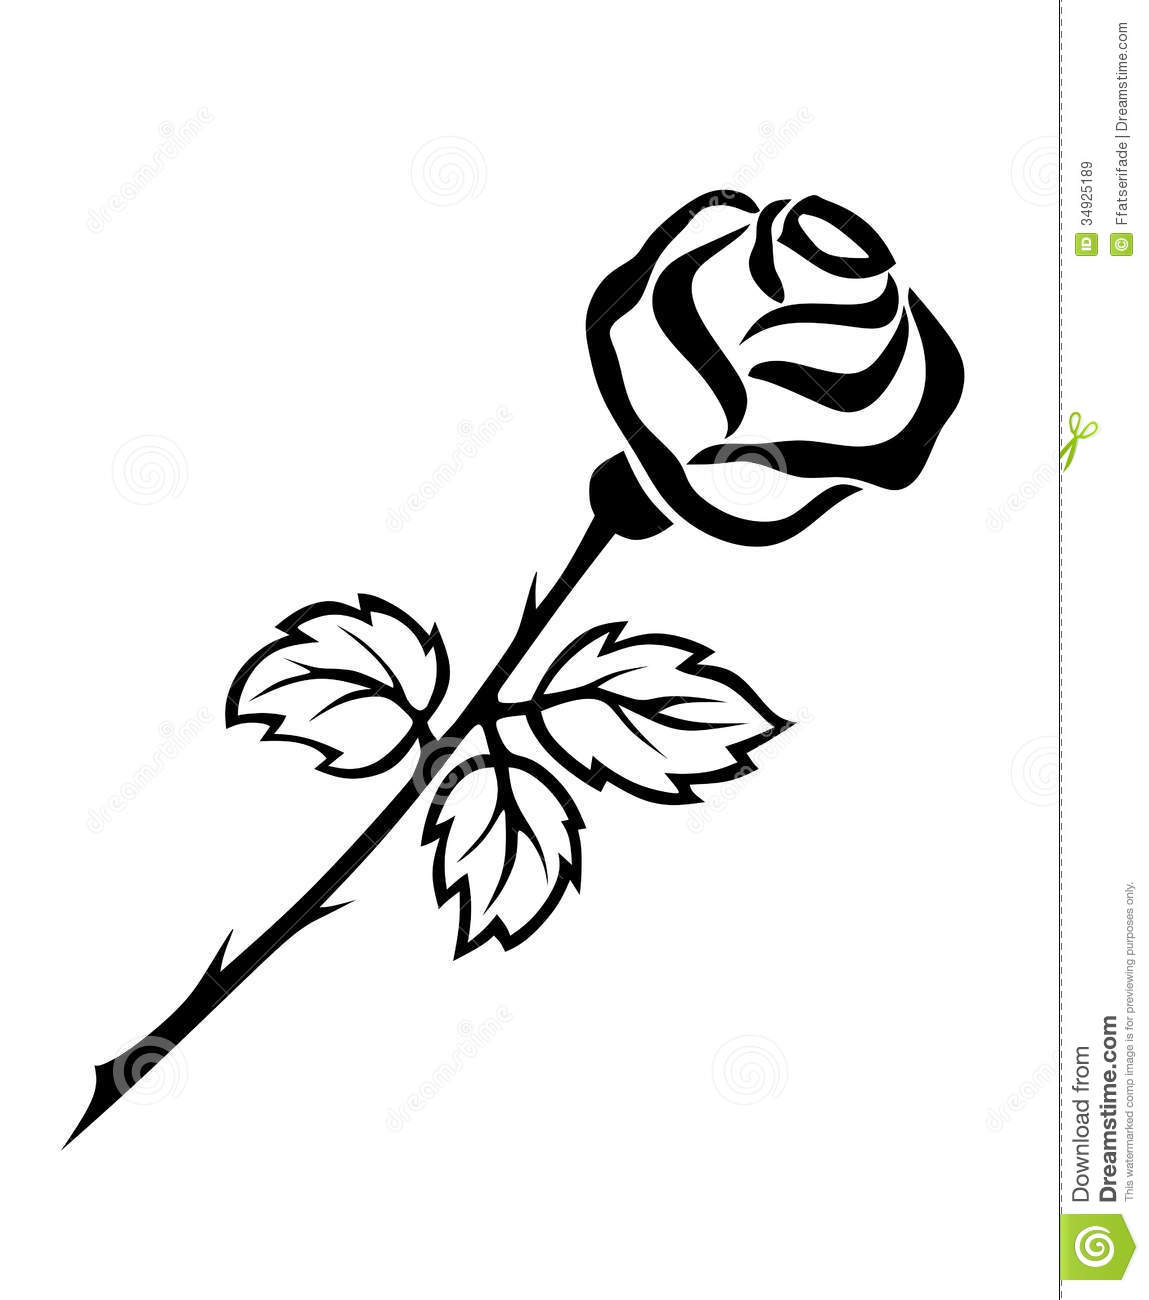 Illustration Of Beautiful Black And Whit-Illustration Of Beautiful Black And White Rose With Thorns-15